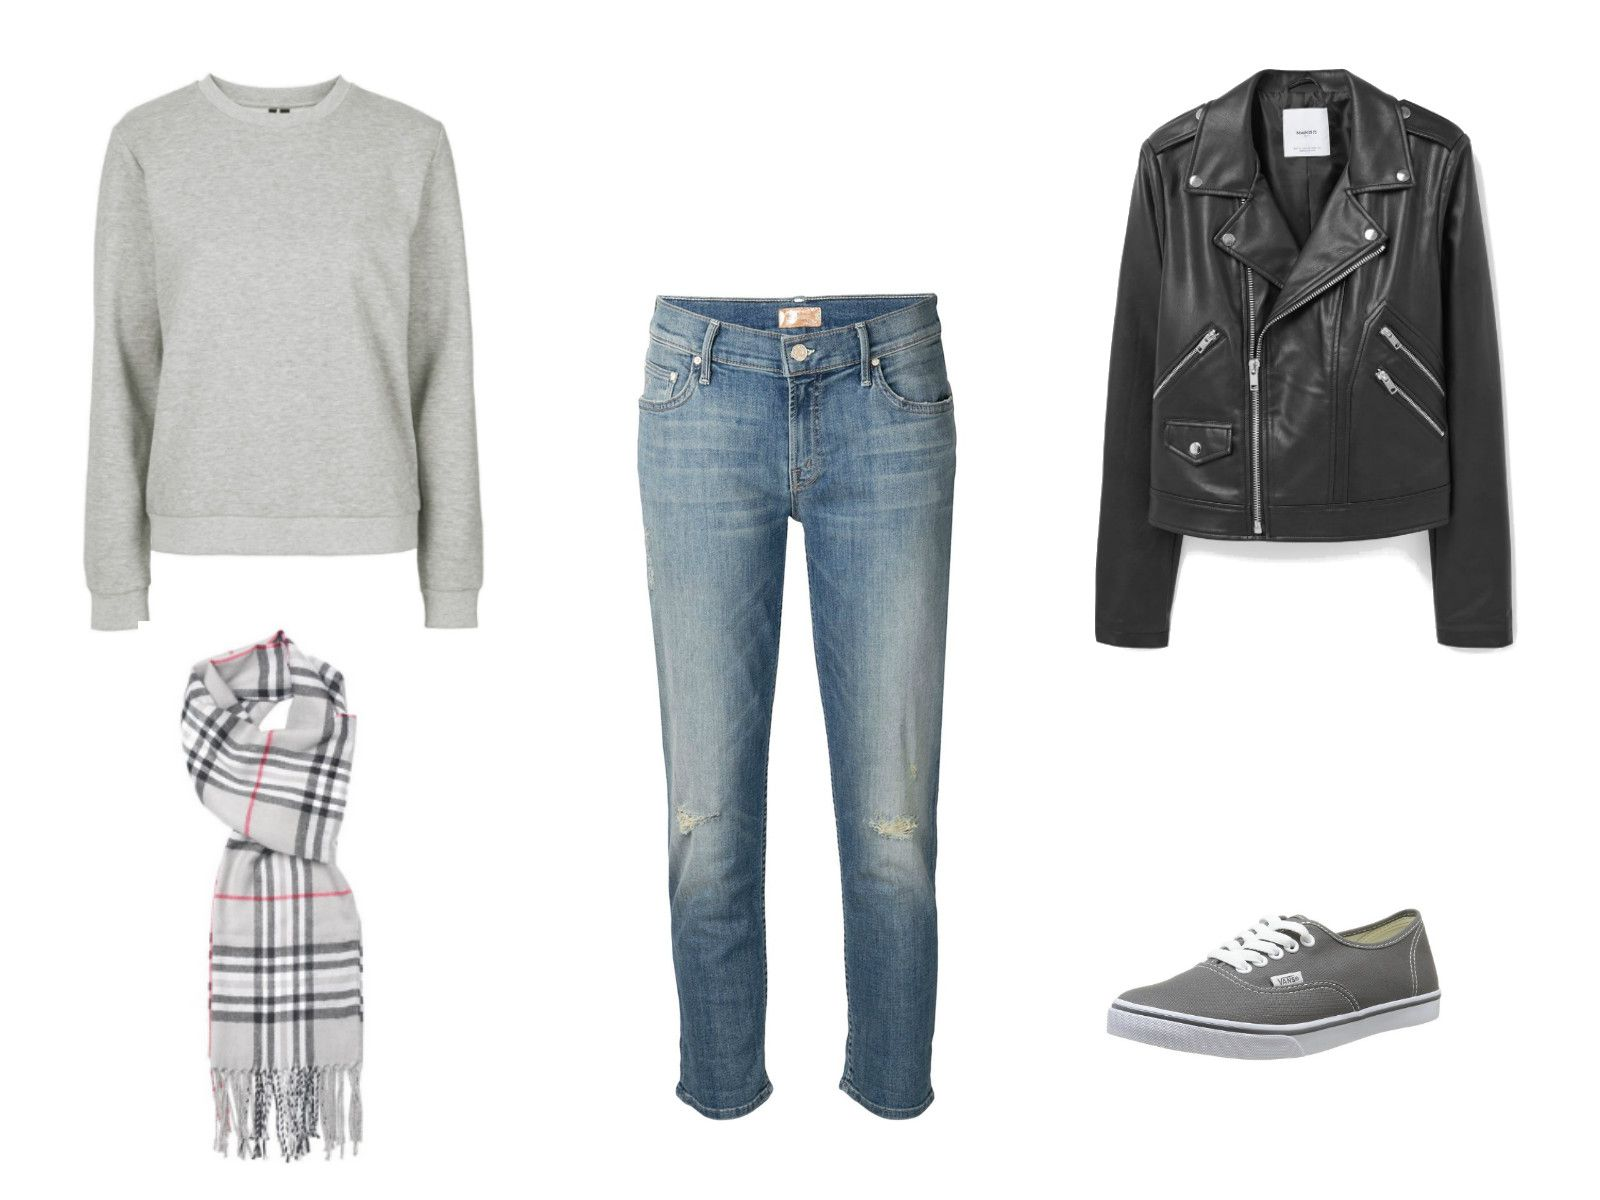 Outfit idea - cropped jeans and leather jacket